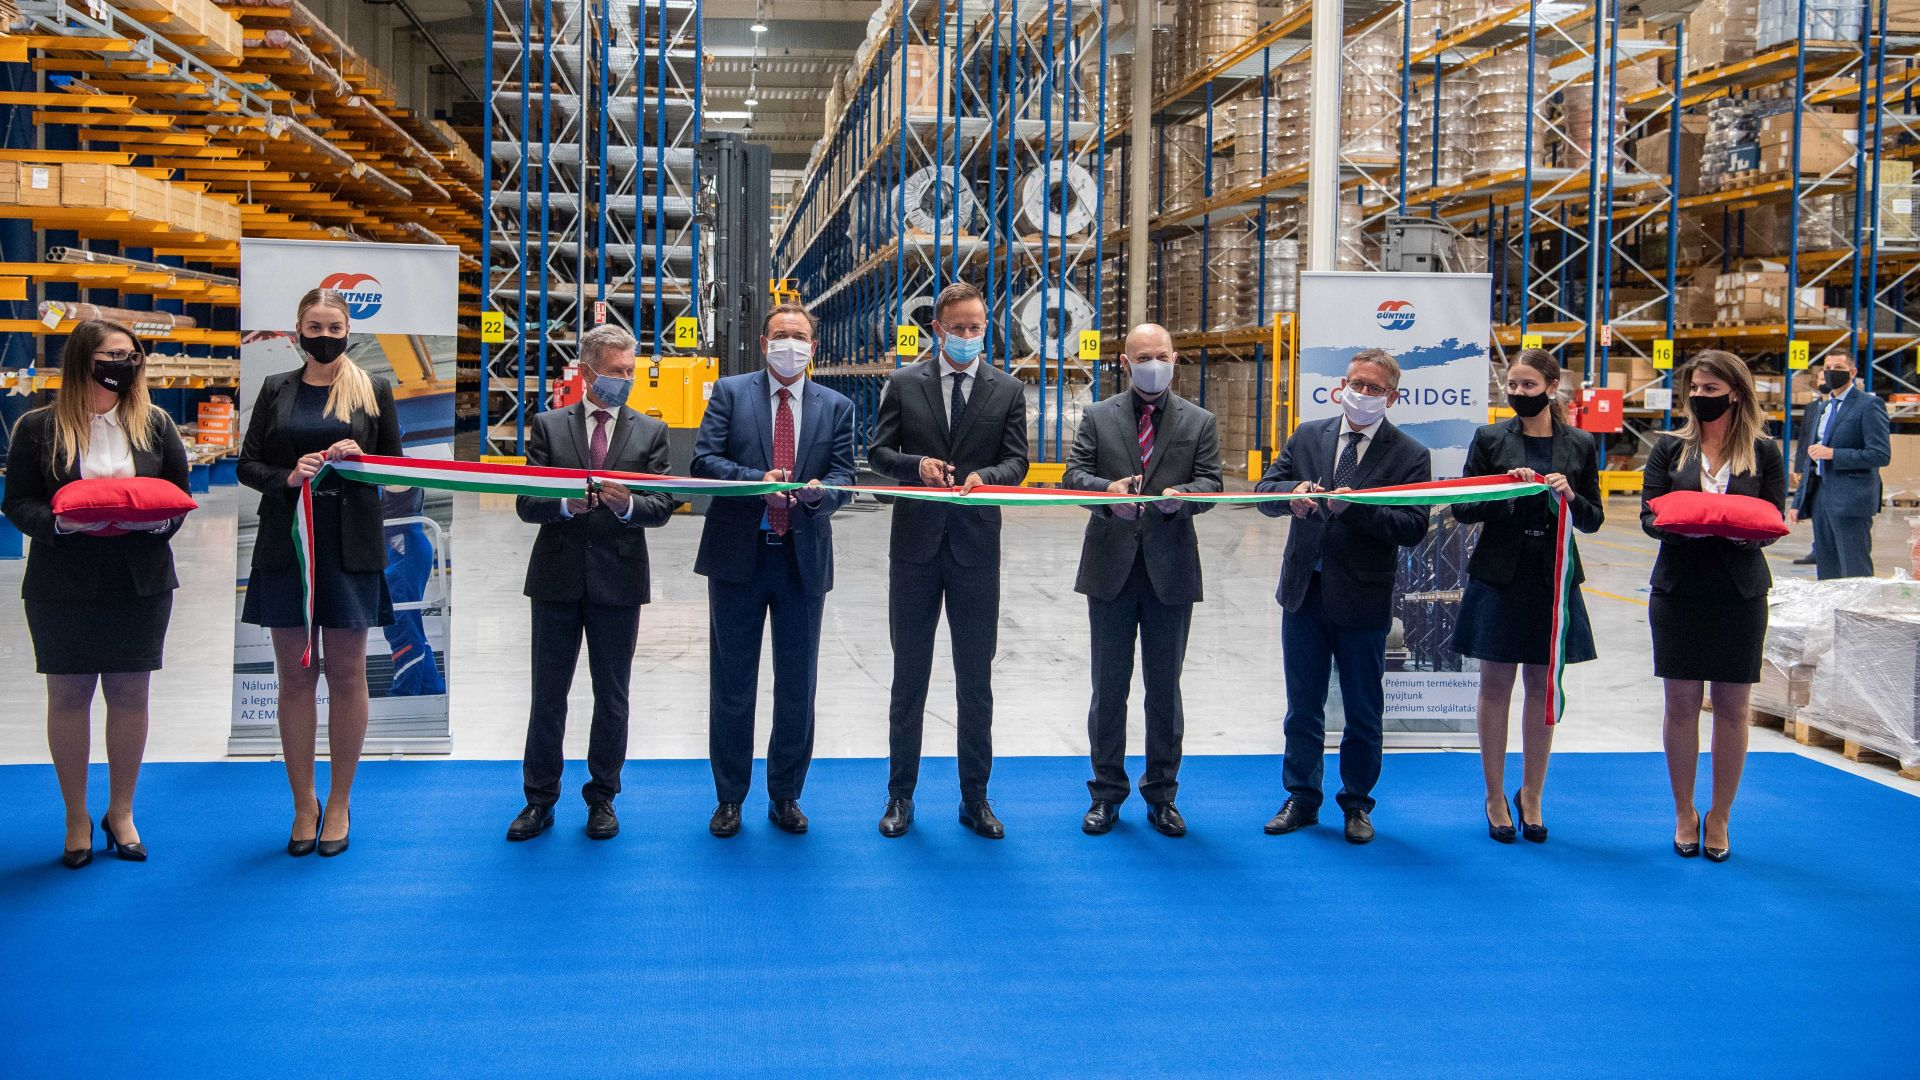 30-year-old Güntner-Tata has inaugurated its latest development - VIDEO REPORT